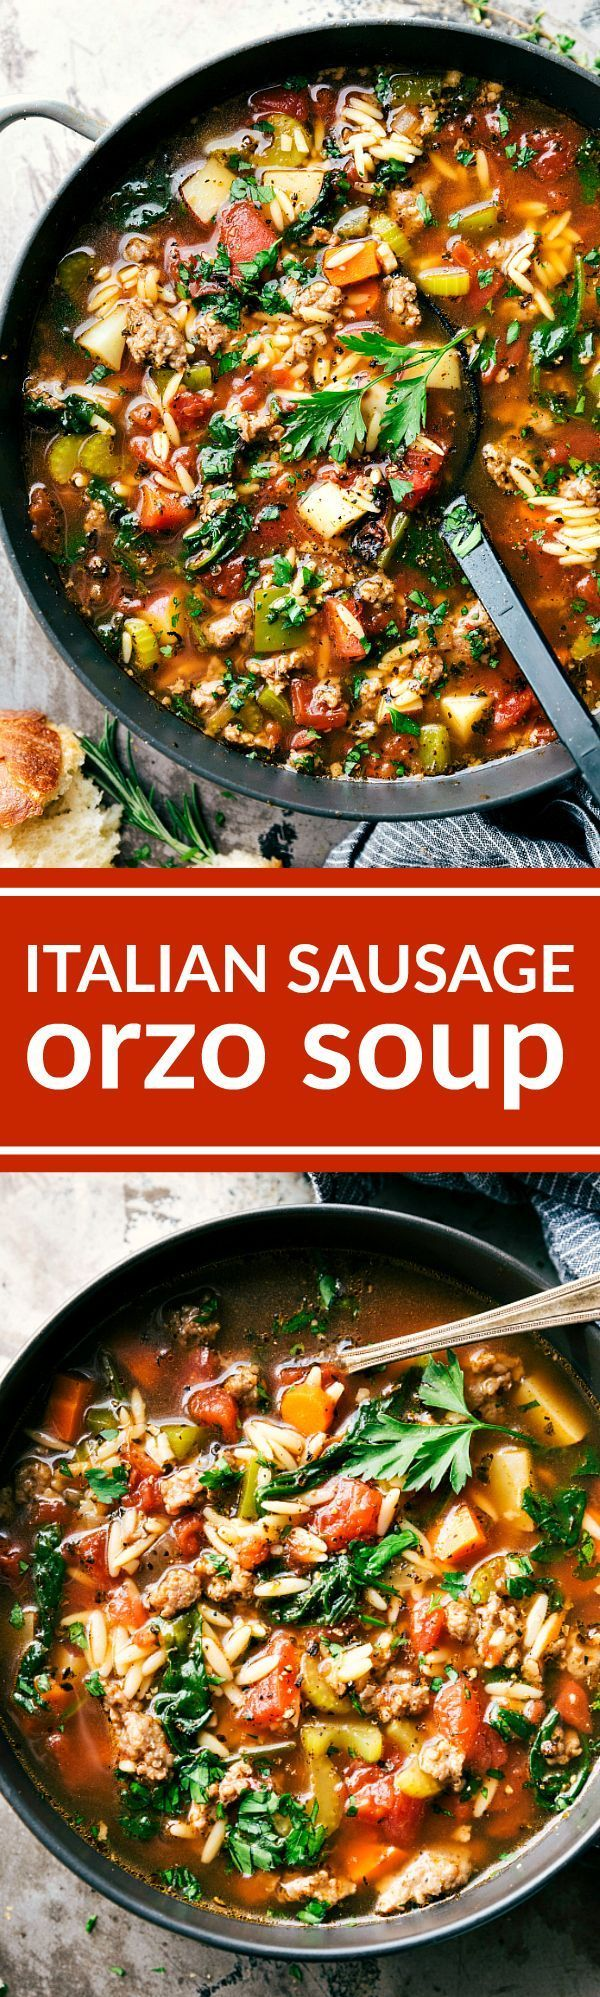 ITALIAN SAUSAGE ORZO SOUP! A delicious and simple to make Italian sausage soup with plenty of veggies (clear out your fridge!) and orzo pasta.